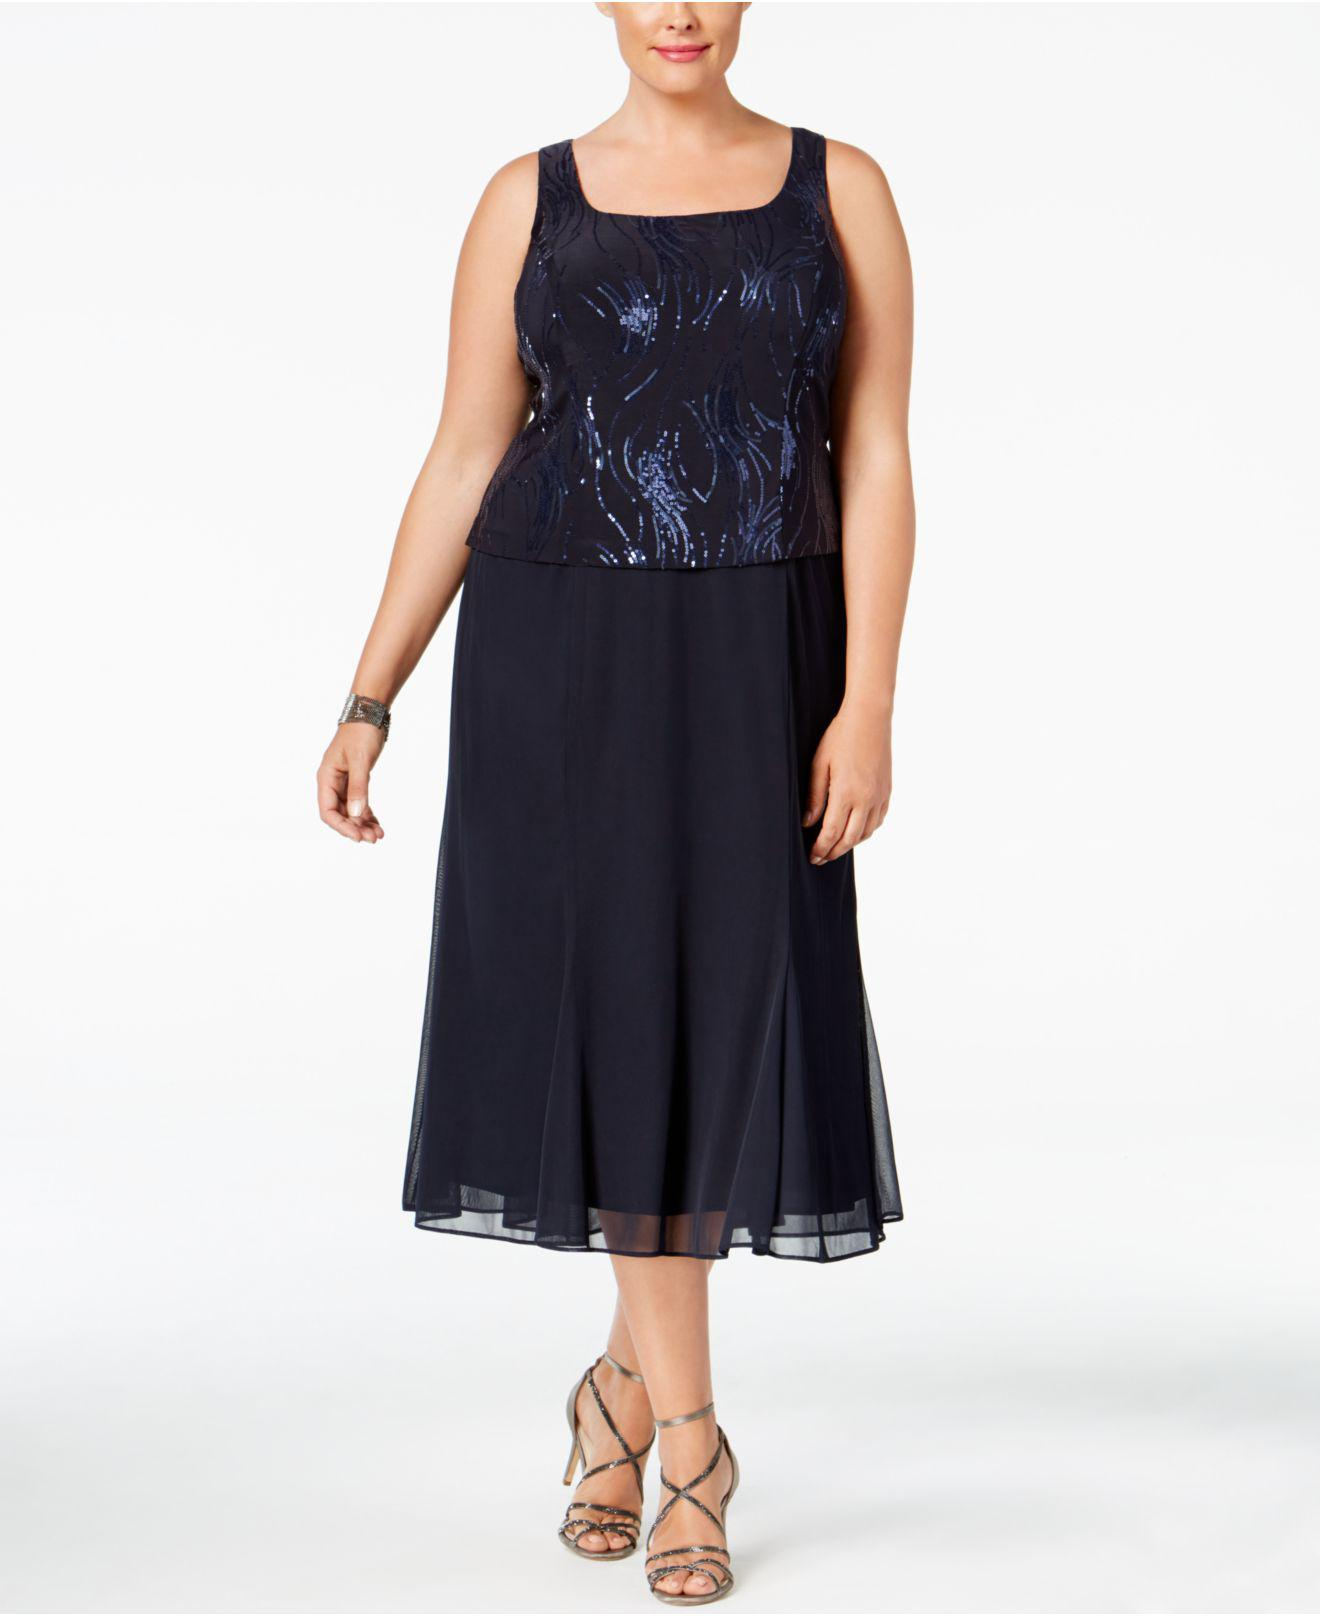 fc1454b1e4e97 Lyst - Alex Evenings Plus Size Sequined Chiffon Dress And Jacket in Blue -  Save 13%